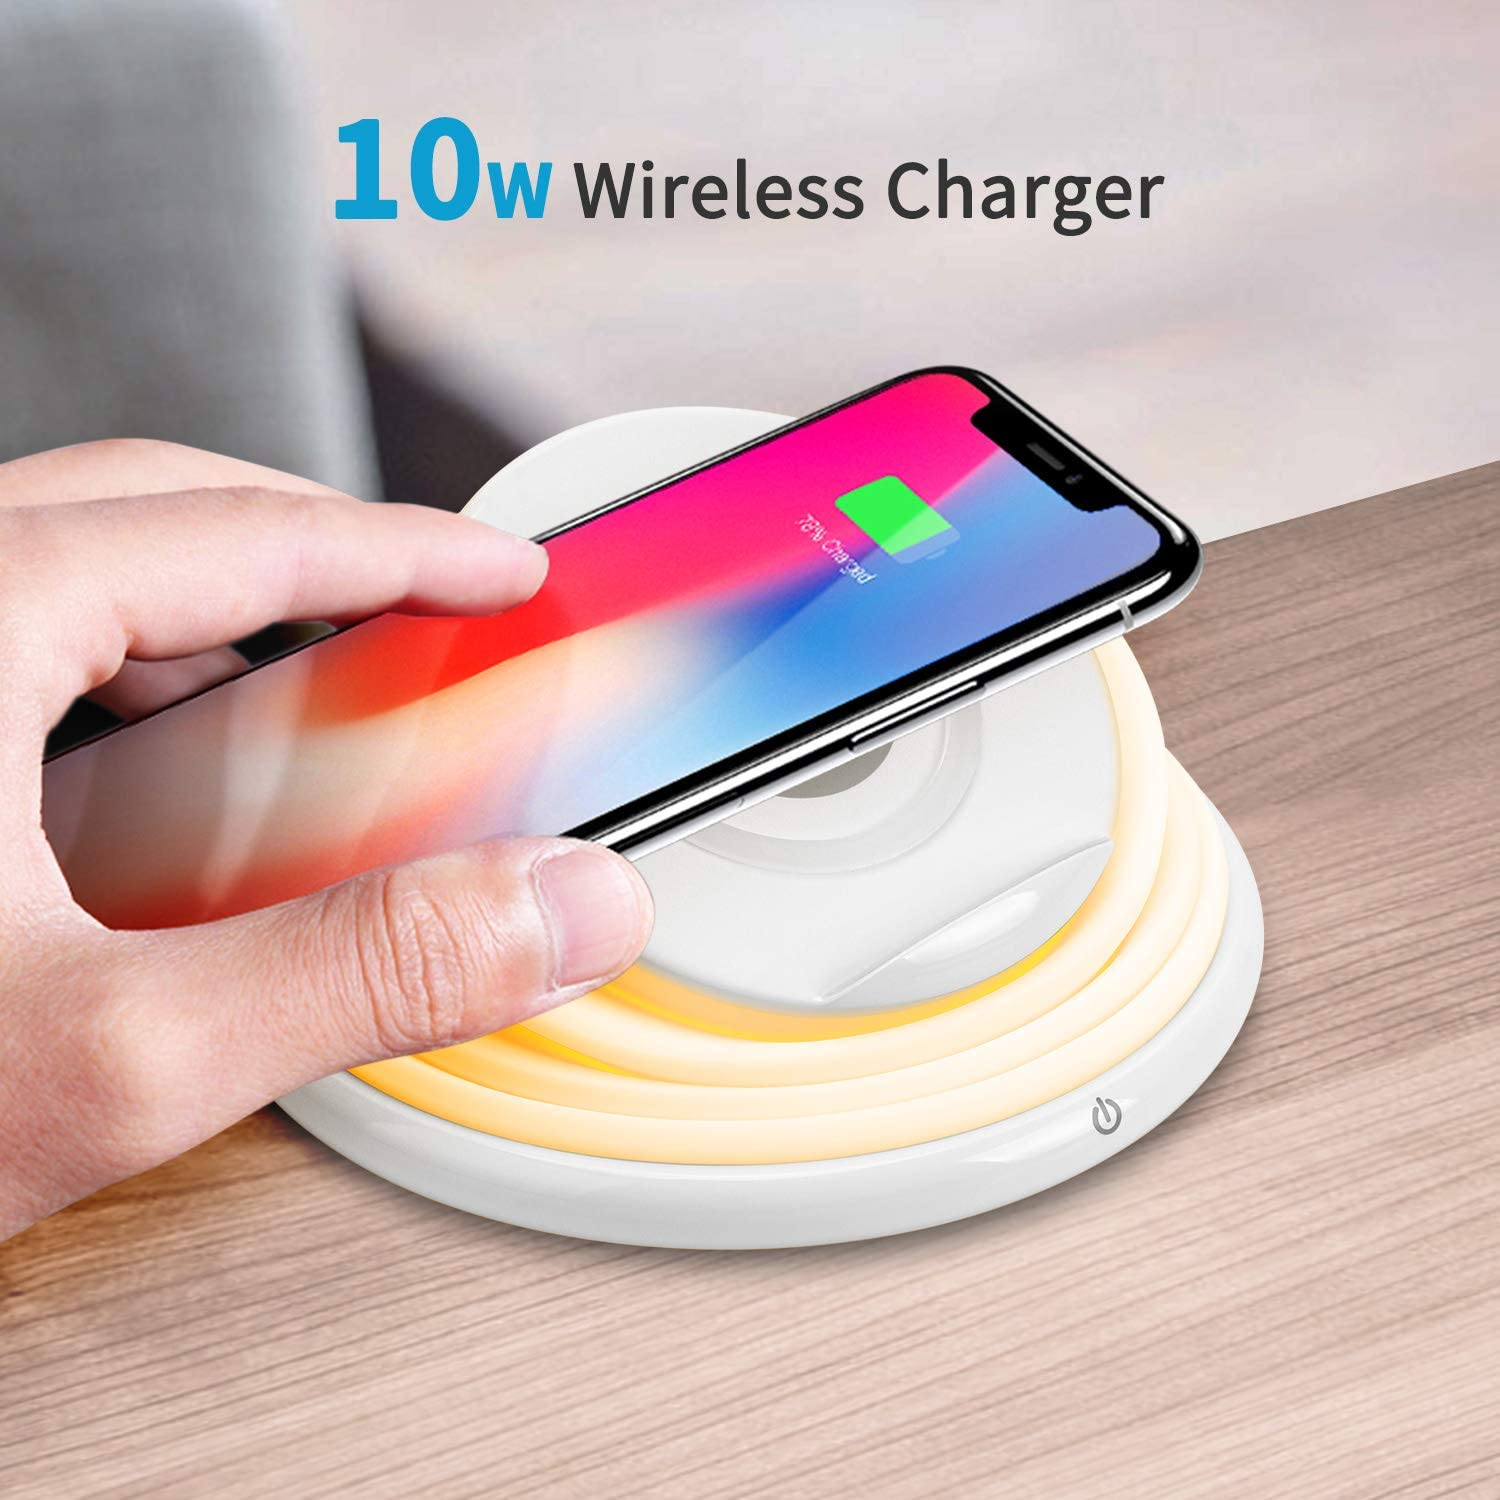 Wireless Charger 10W Qi JACKYLED Fast Charging Phone Stand with Foldable LED Night Light Adjustable Colors Compatible with iPhone AirPods2 Galaxy